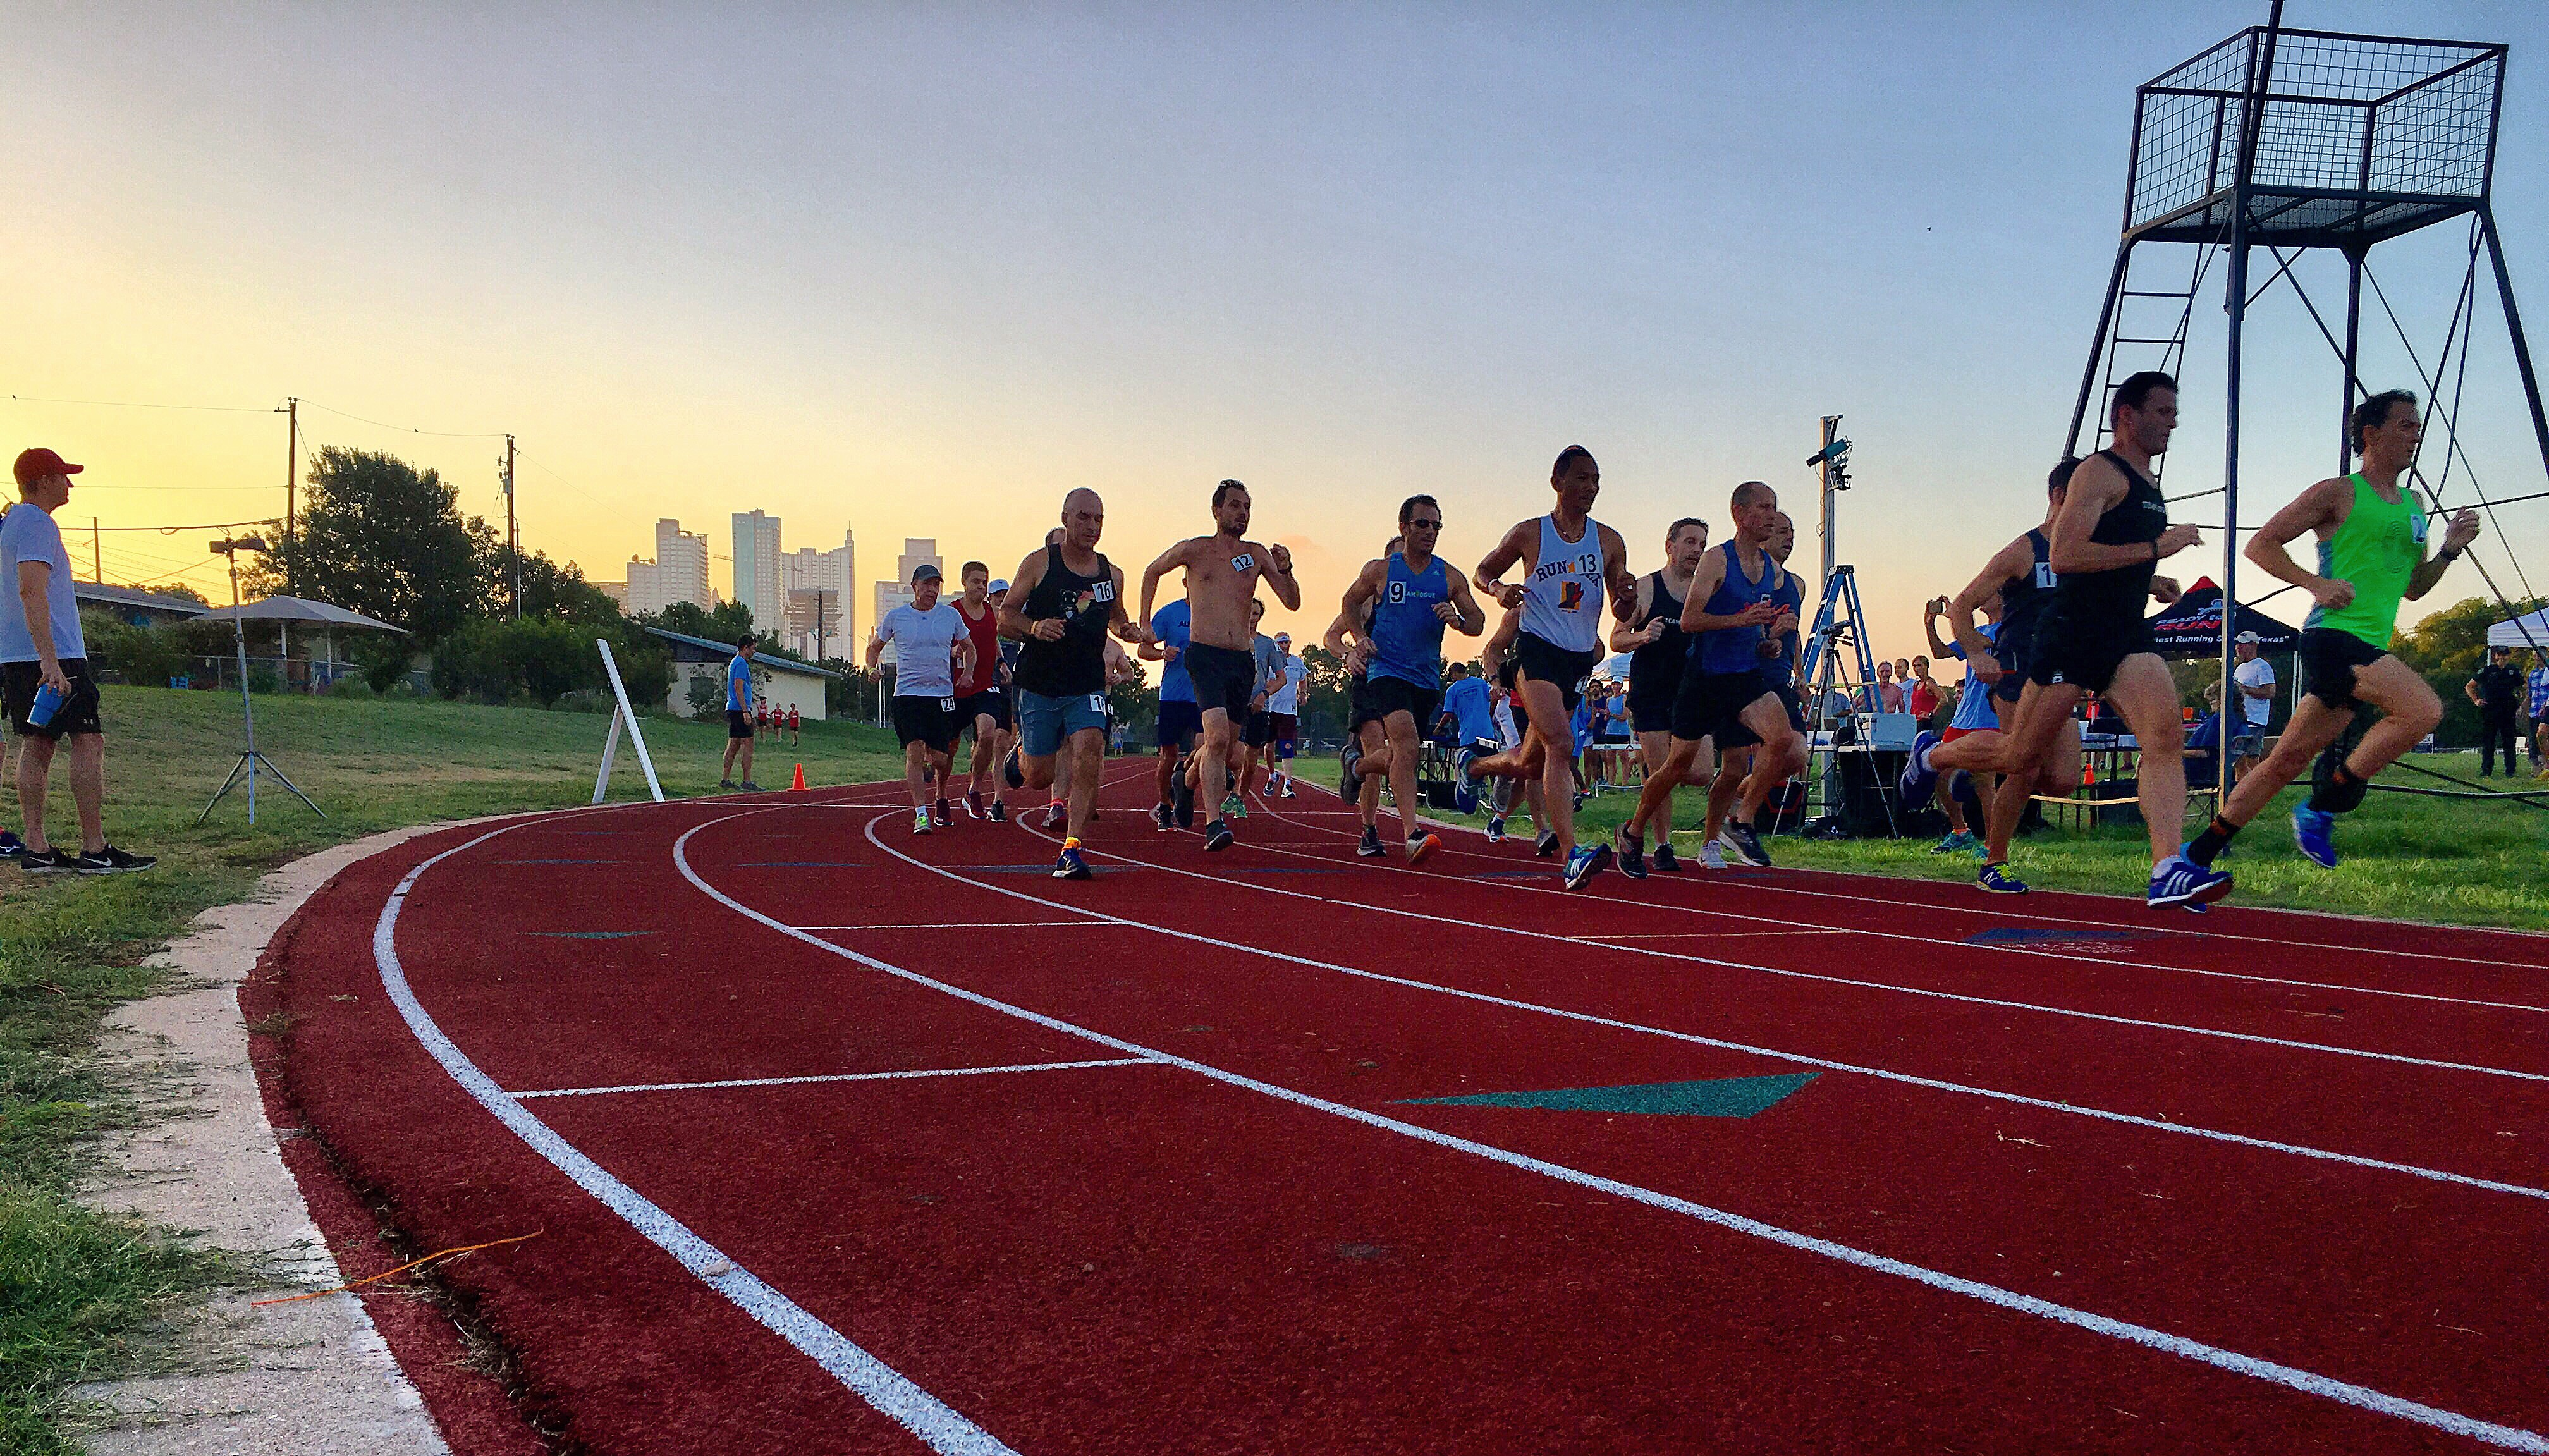 Runners test their speed on the Austin High Track, located near Miles 6-13 of the Austin Marathon course.